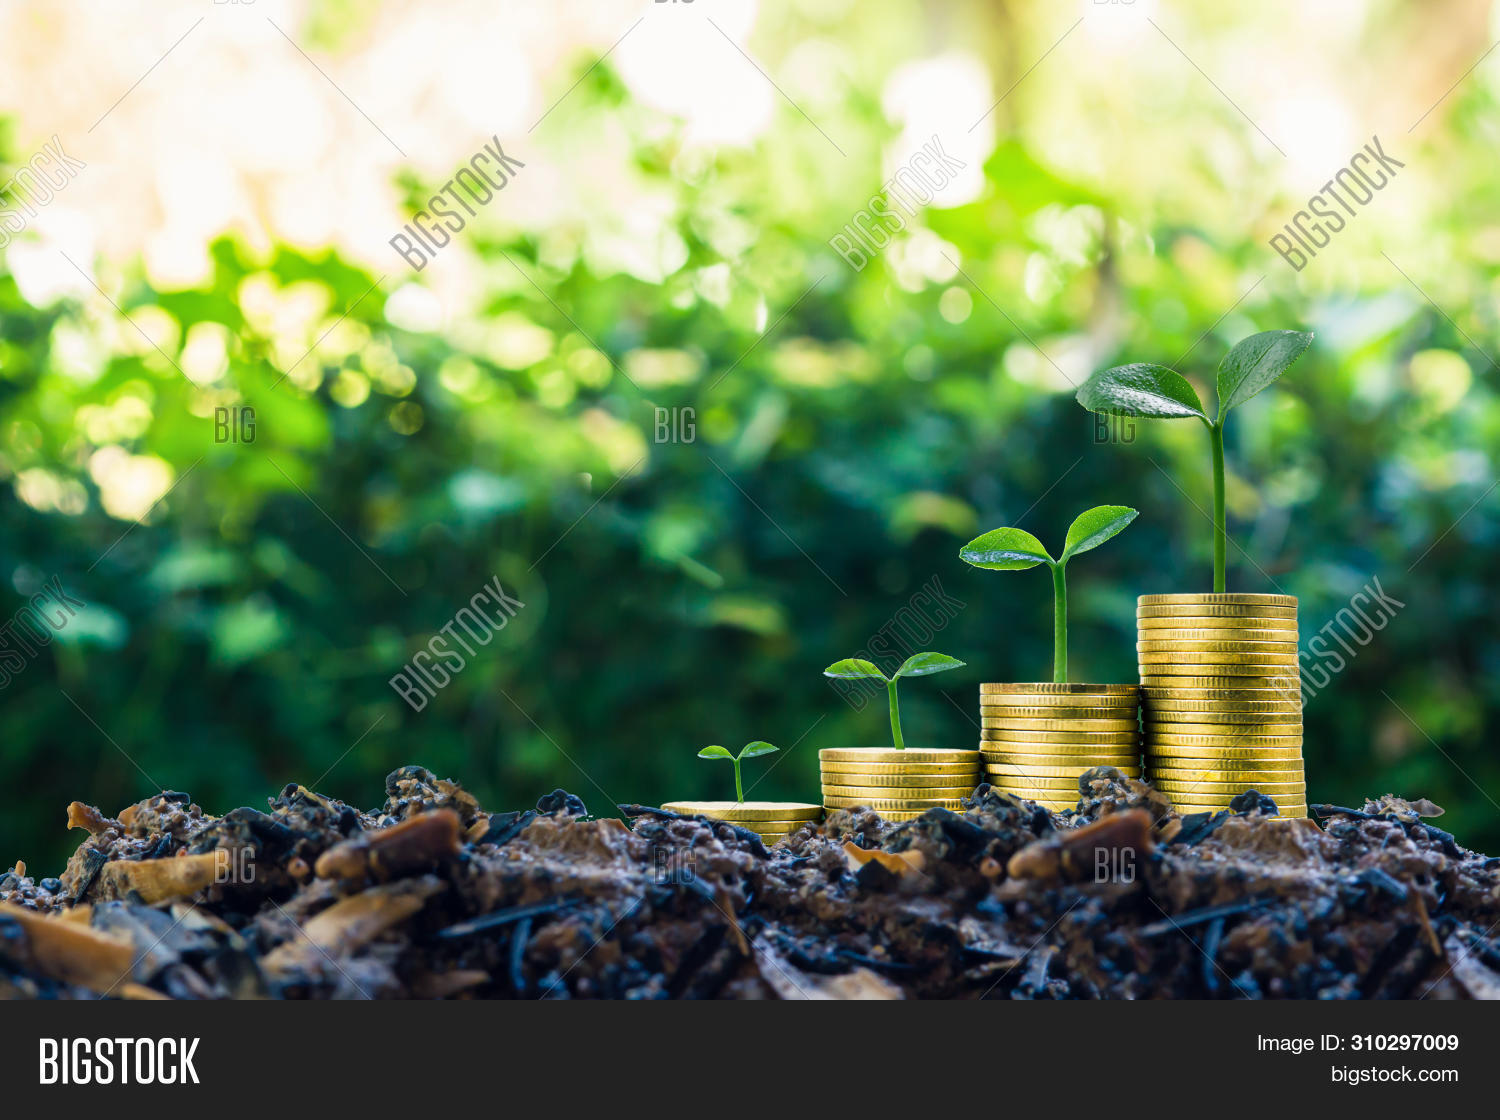 background,bank,banking,business,cash,coin,concept,currency,deposit,development,earnings,economic,economy,environment,finance,financial,fund,gold,green,grow,growing,growth,ideas,improvement,income,interest,invest,investment,investor,leaf,loan,making,money,mortgage,nature,plant,profit,rate,salary,save,savings,soil,stack,step,stock,success,target,tree,wealth